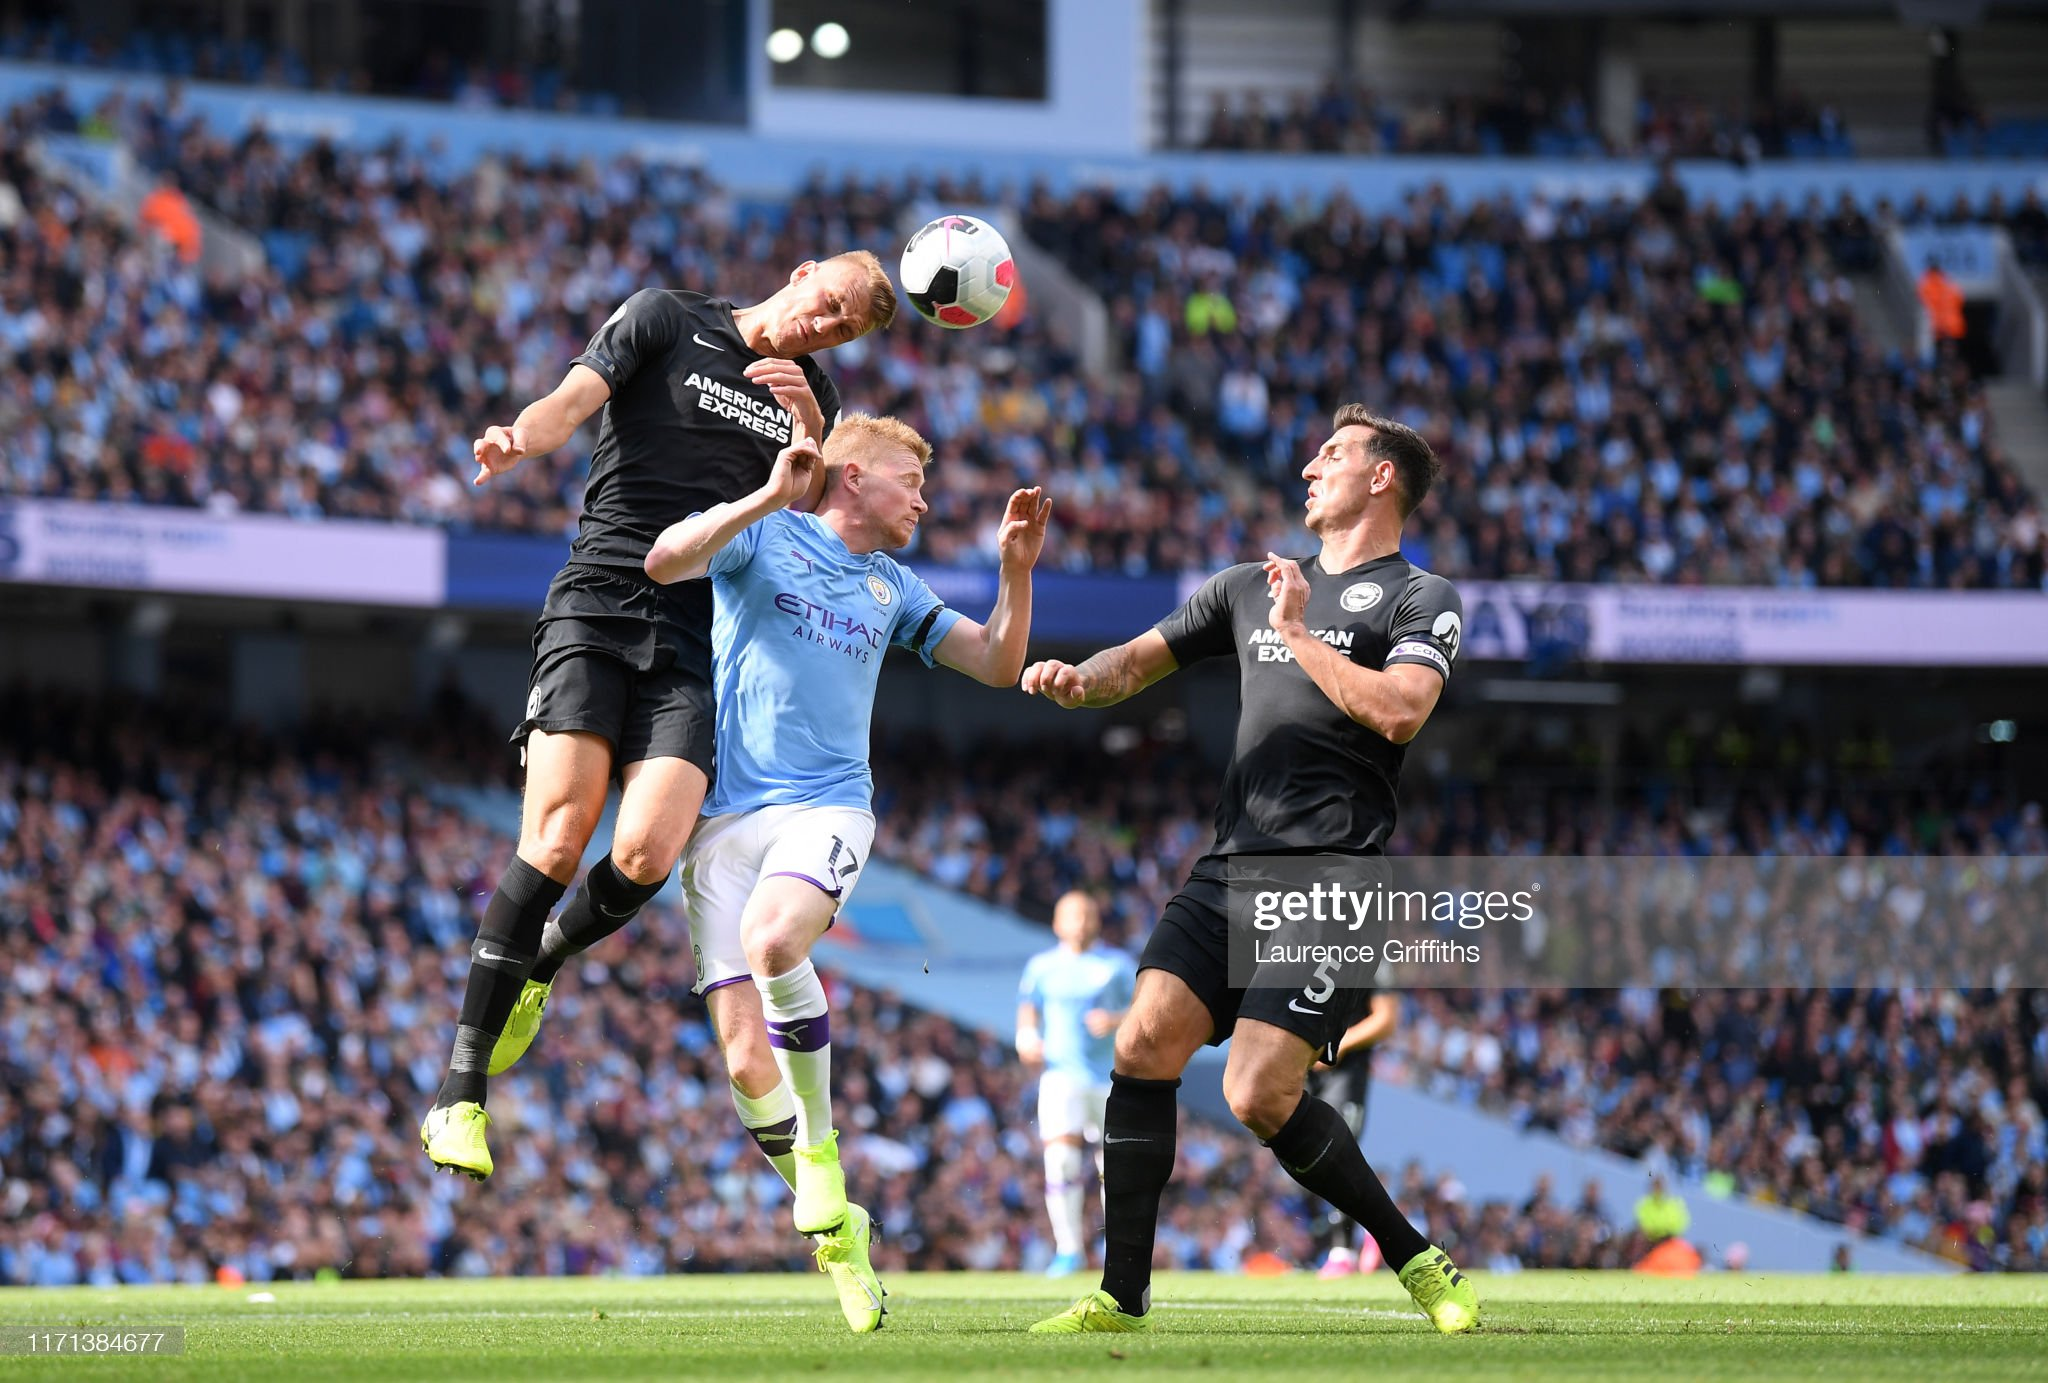 Brighton v Manchester City Preview, prediction and odds